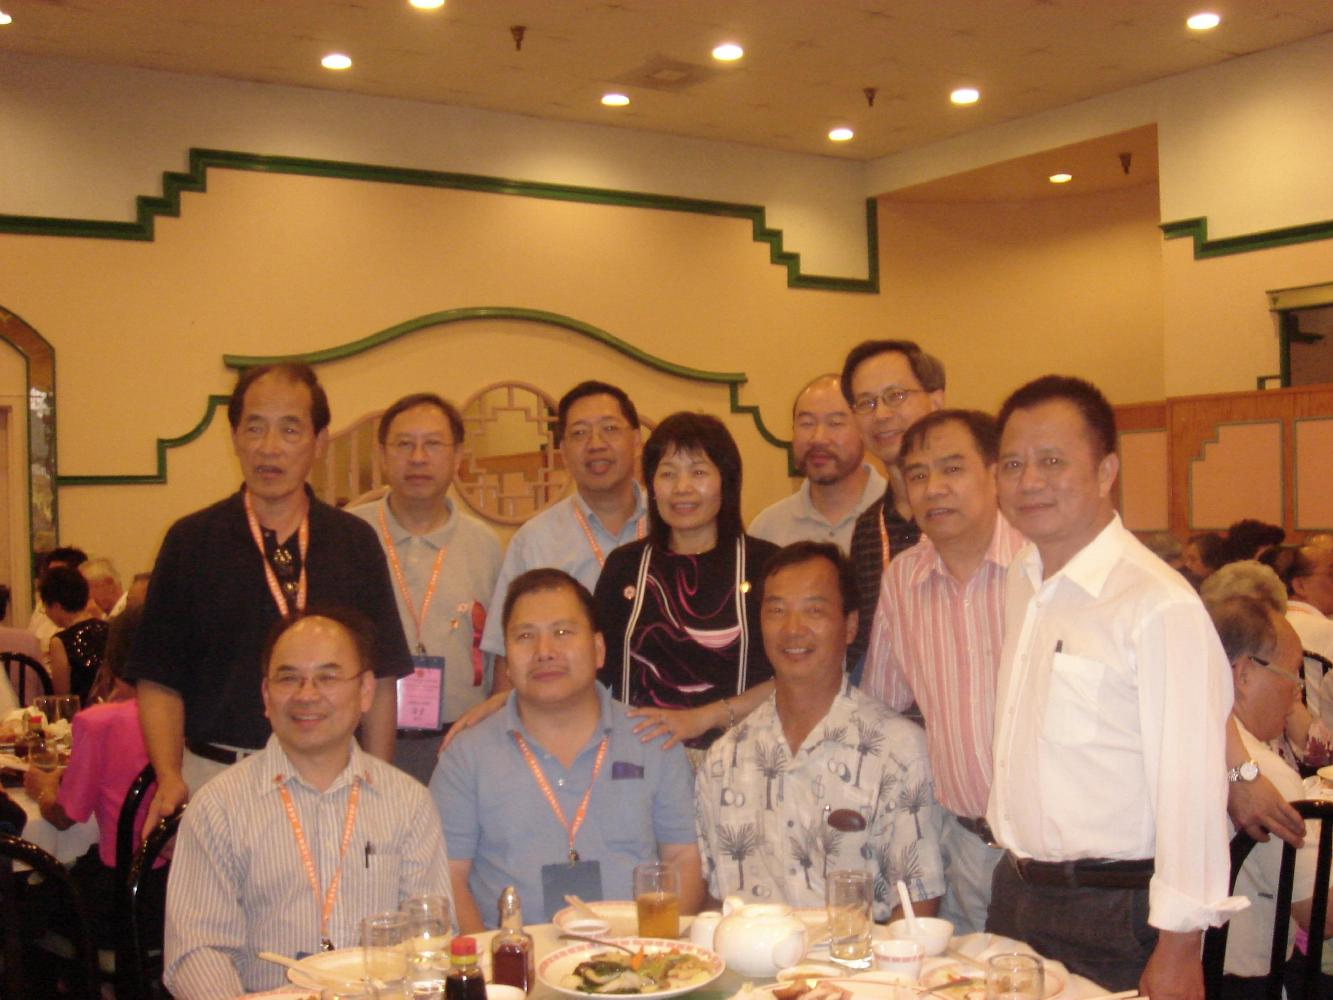 With members of